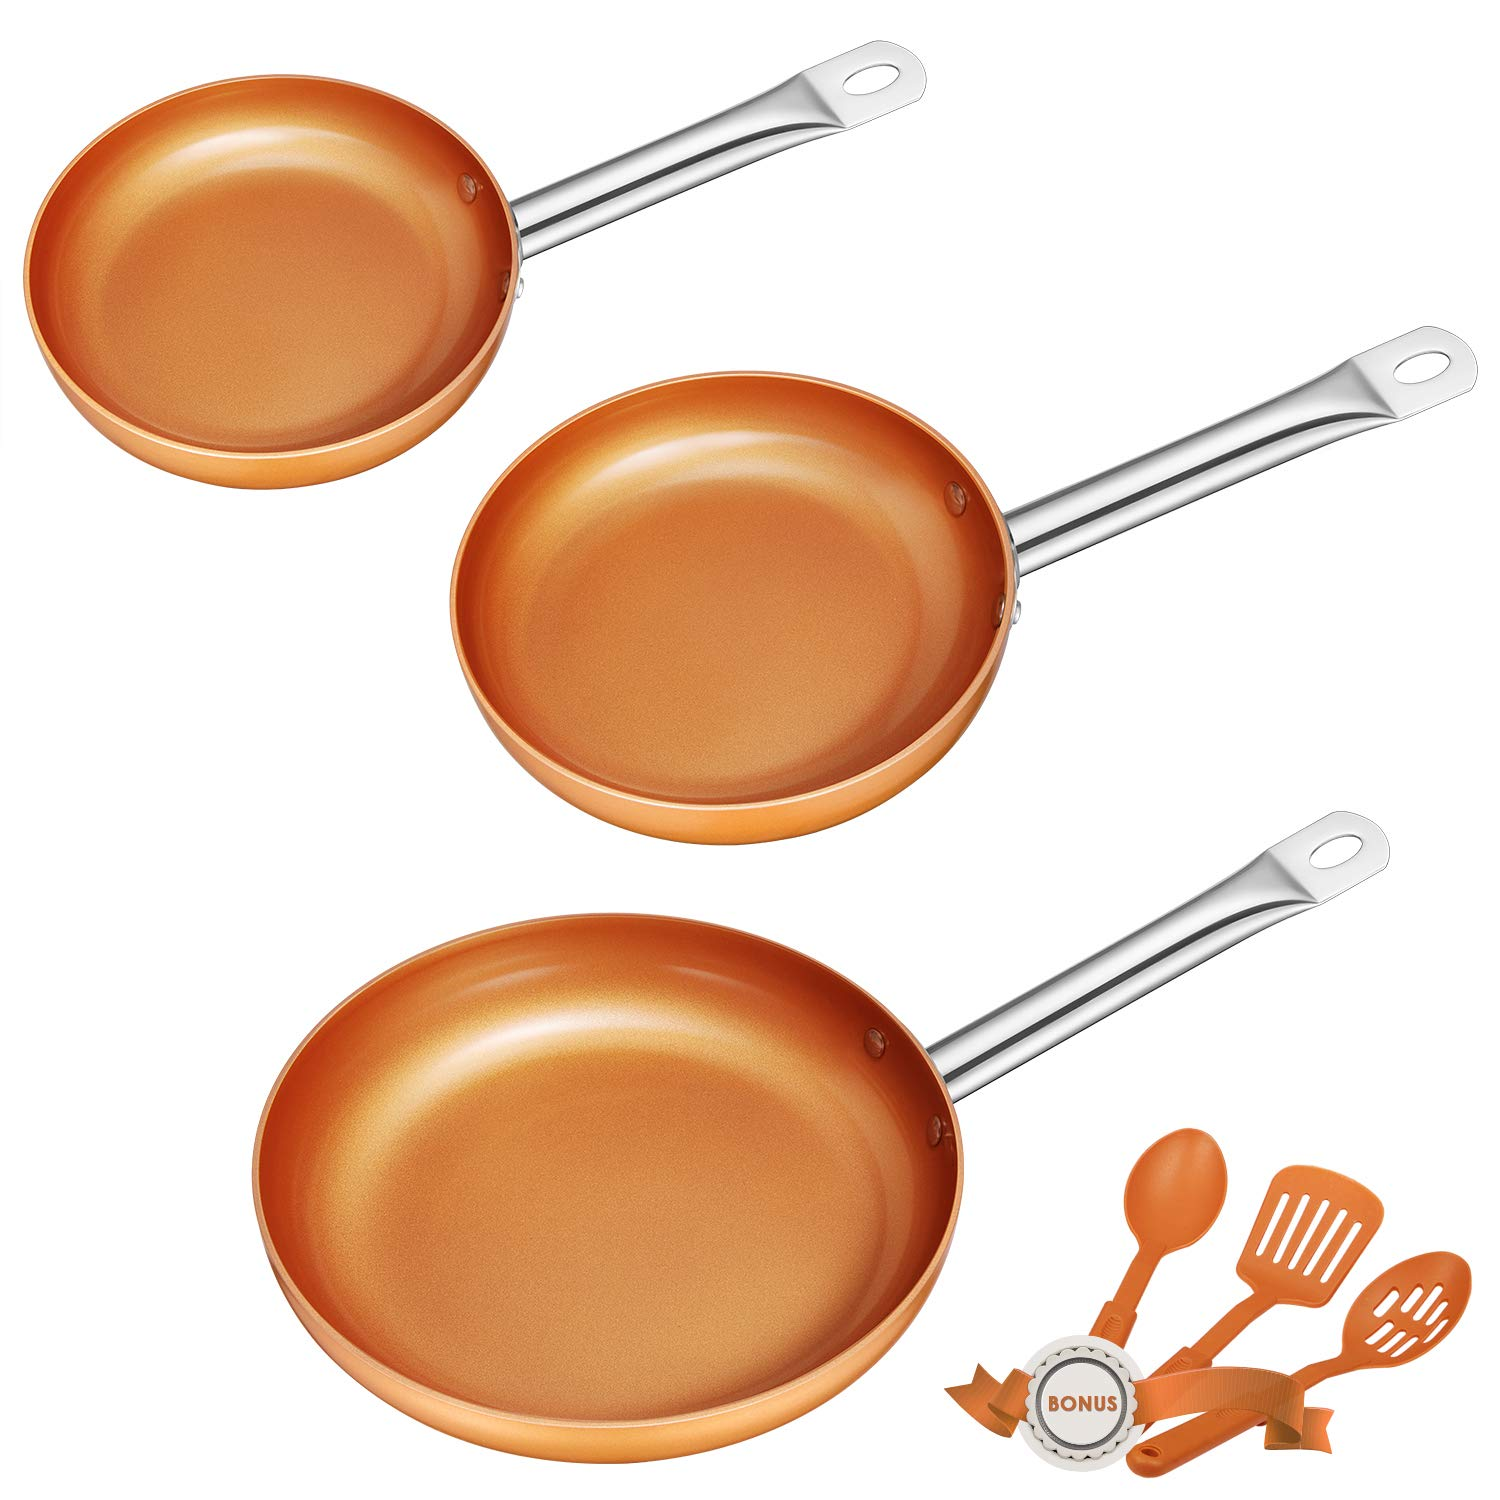 Frying Pan Set Non-stick Chef Pan Copper Style Pan with Stainless Steel Handle Deik PFOA free Skillet Dishwasher and Oven Safe Cookware Set 3 Pack with 3 Bonus Professional Spatula and Spoon